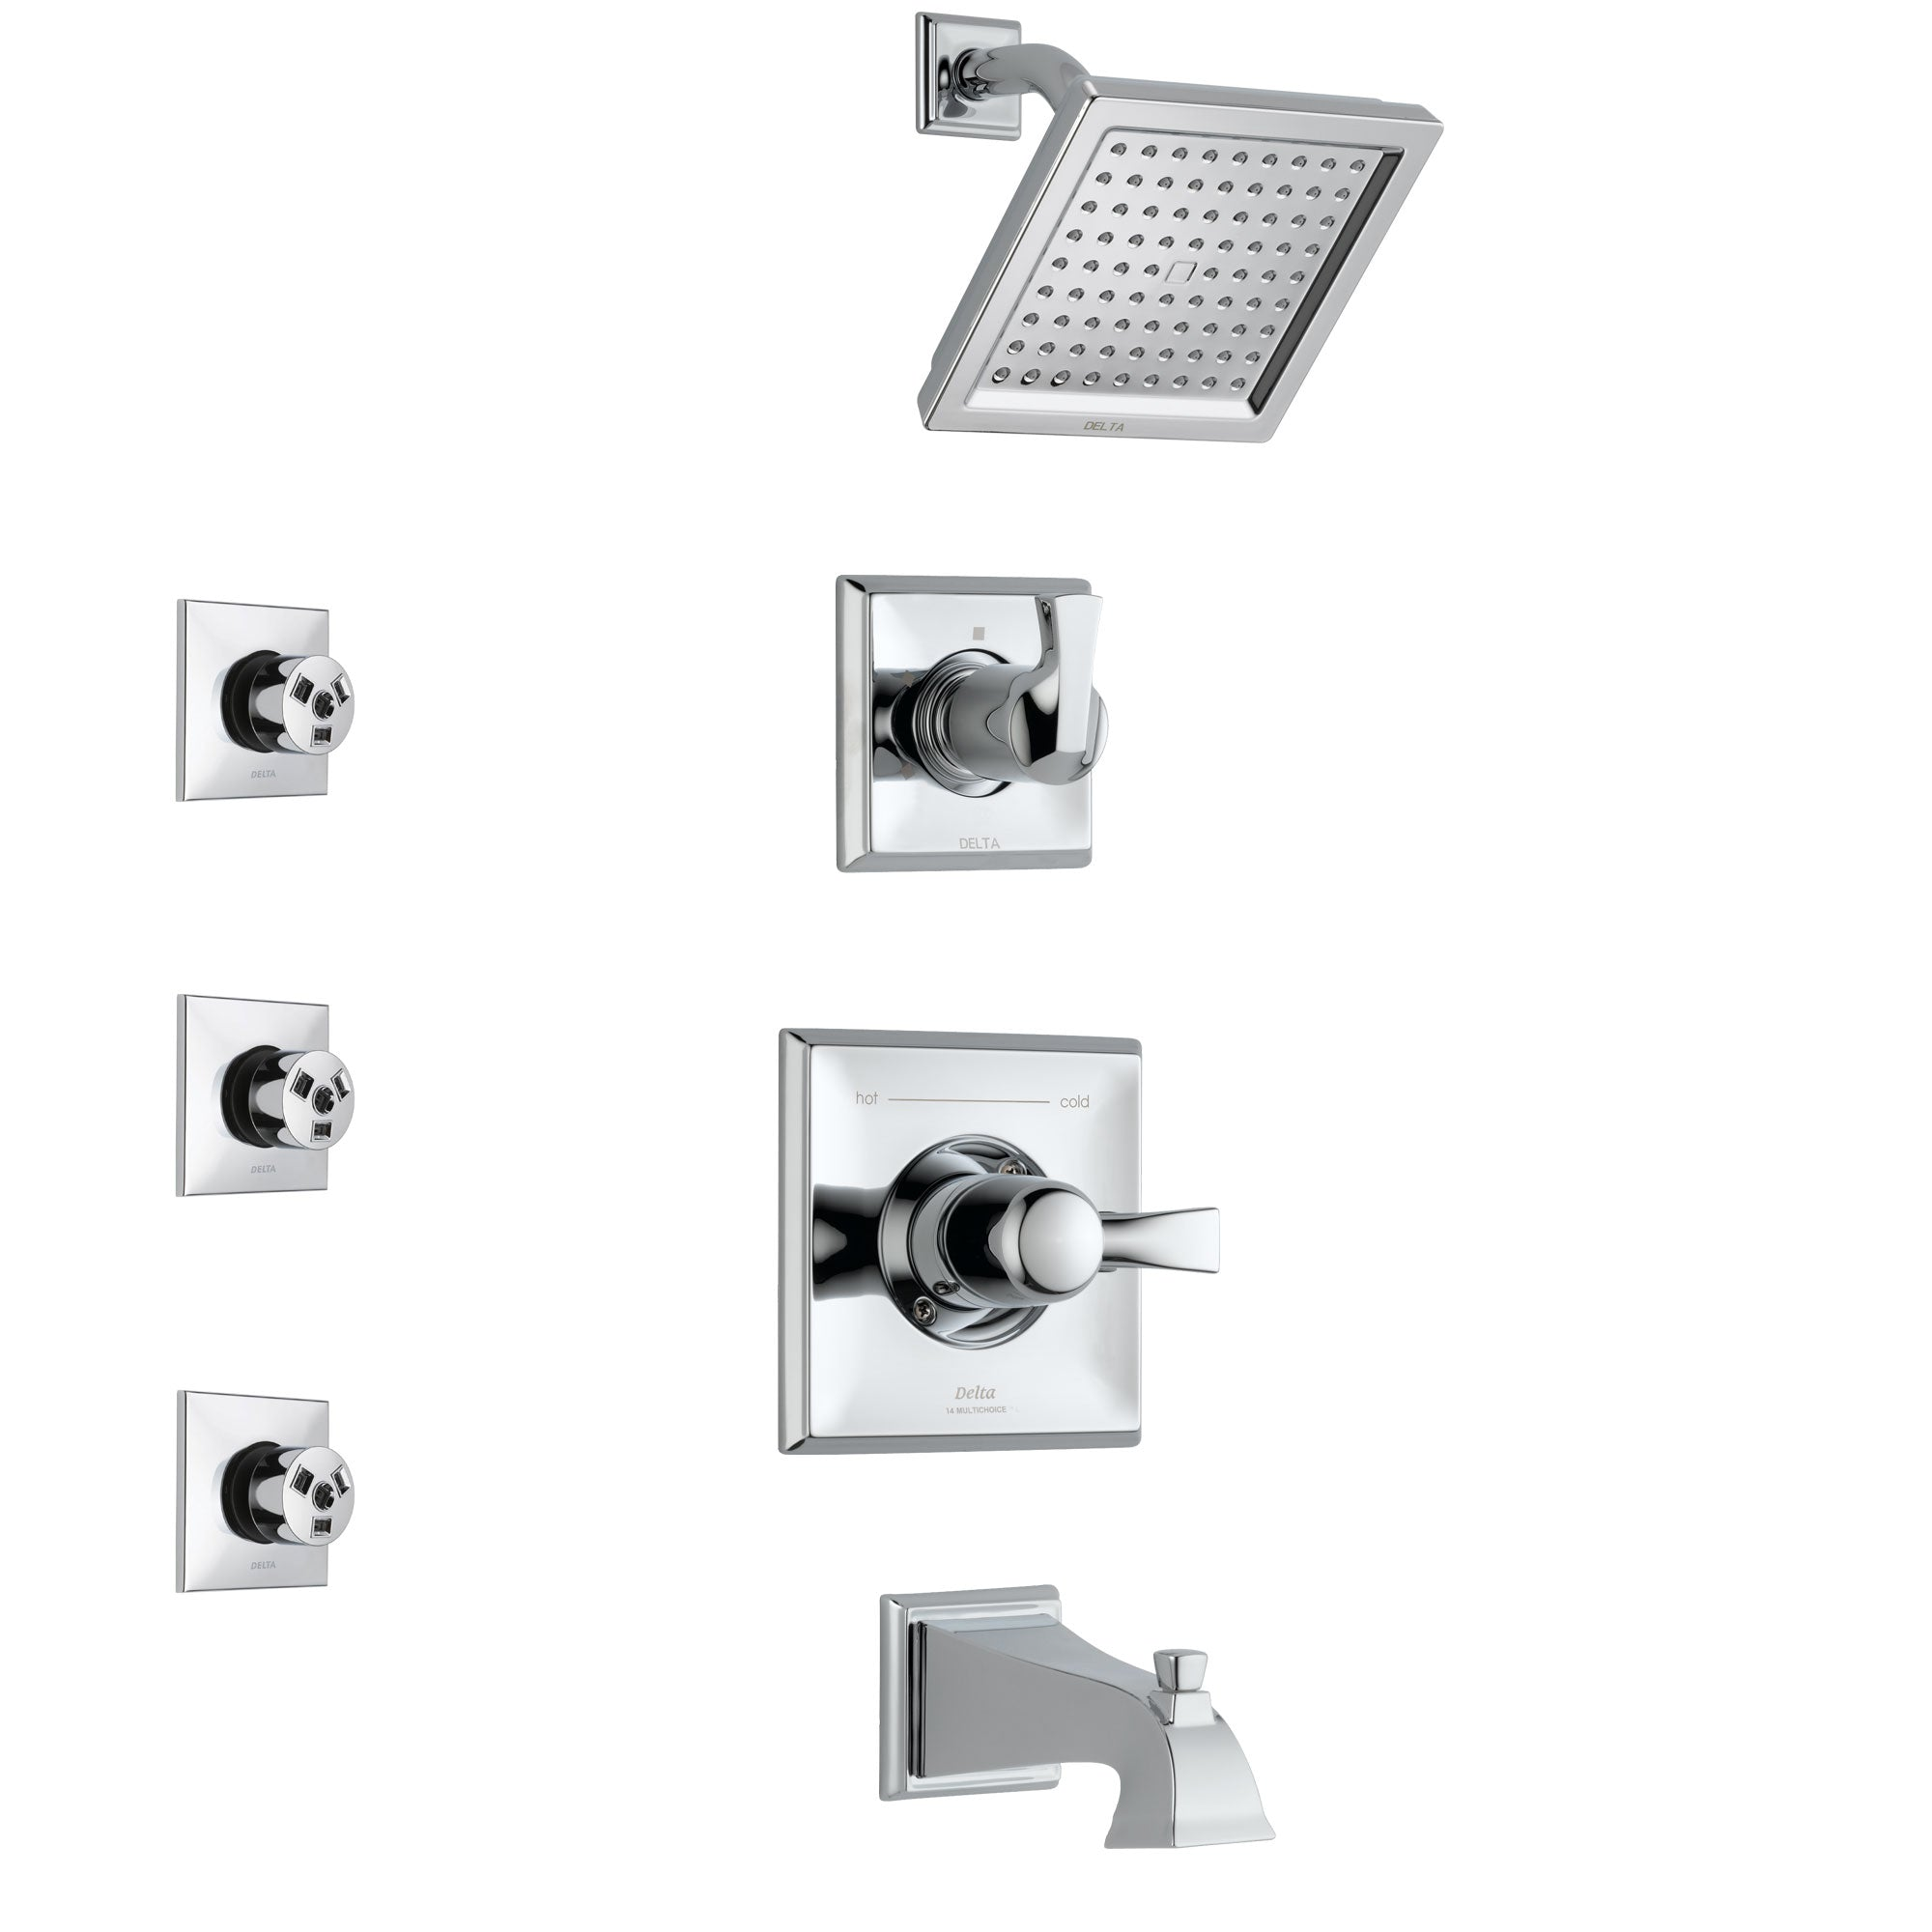 Delta Dryden Chrome Finish Tub and Shower System with Control Handle, 3-Setting Diverter, Showerhead, and 3 Body Sprays SS1445122